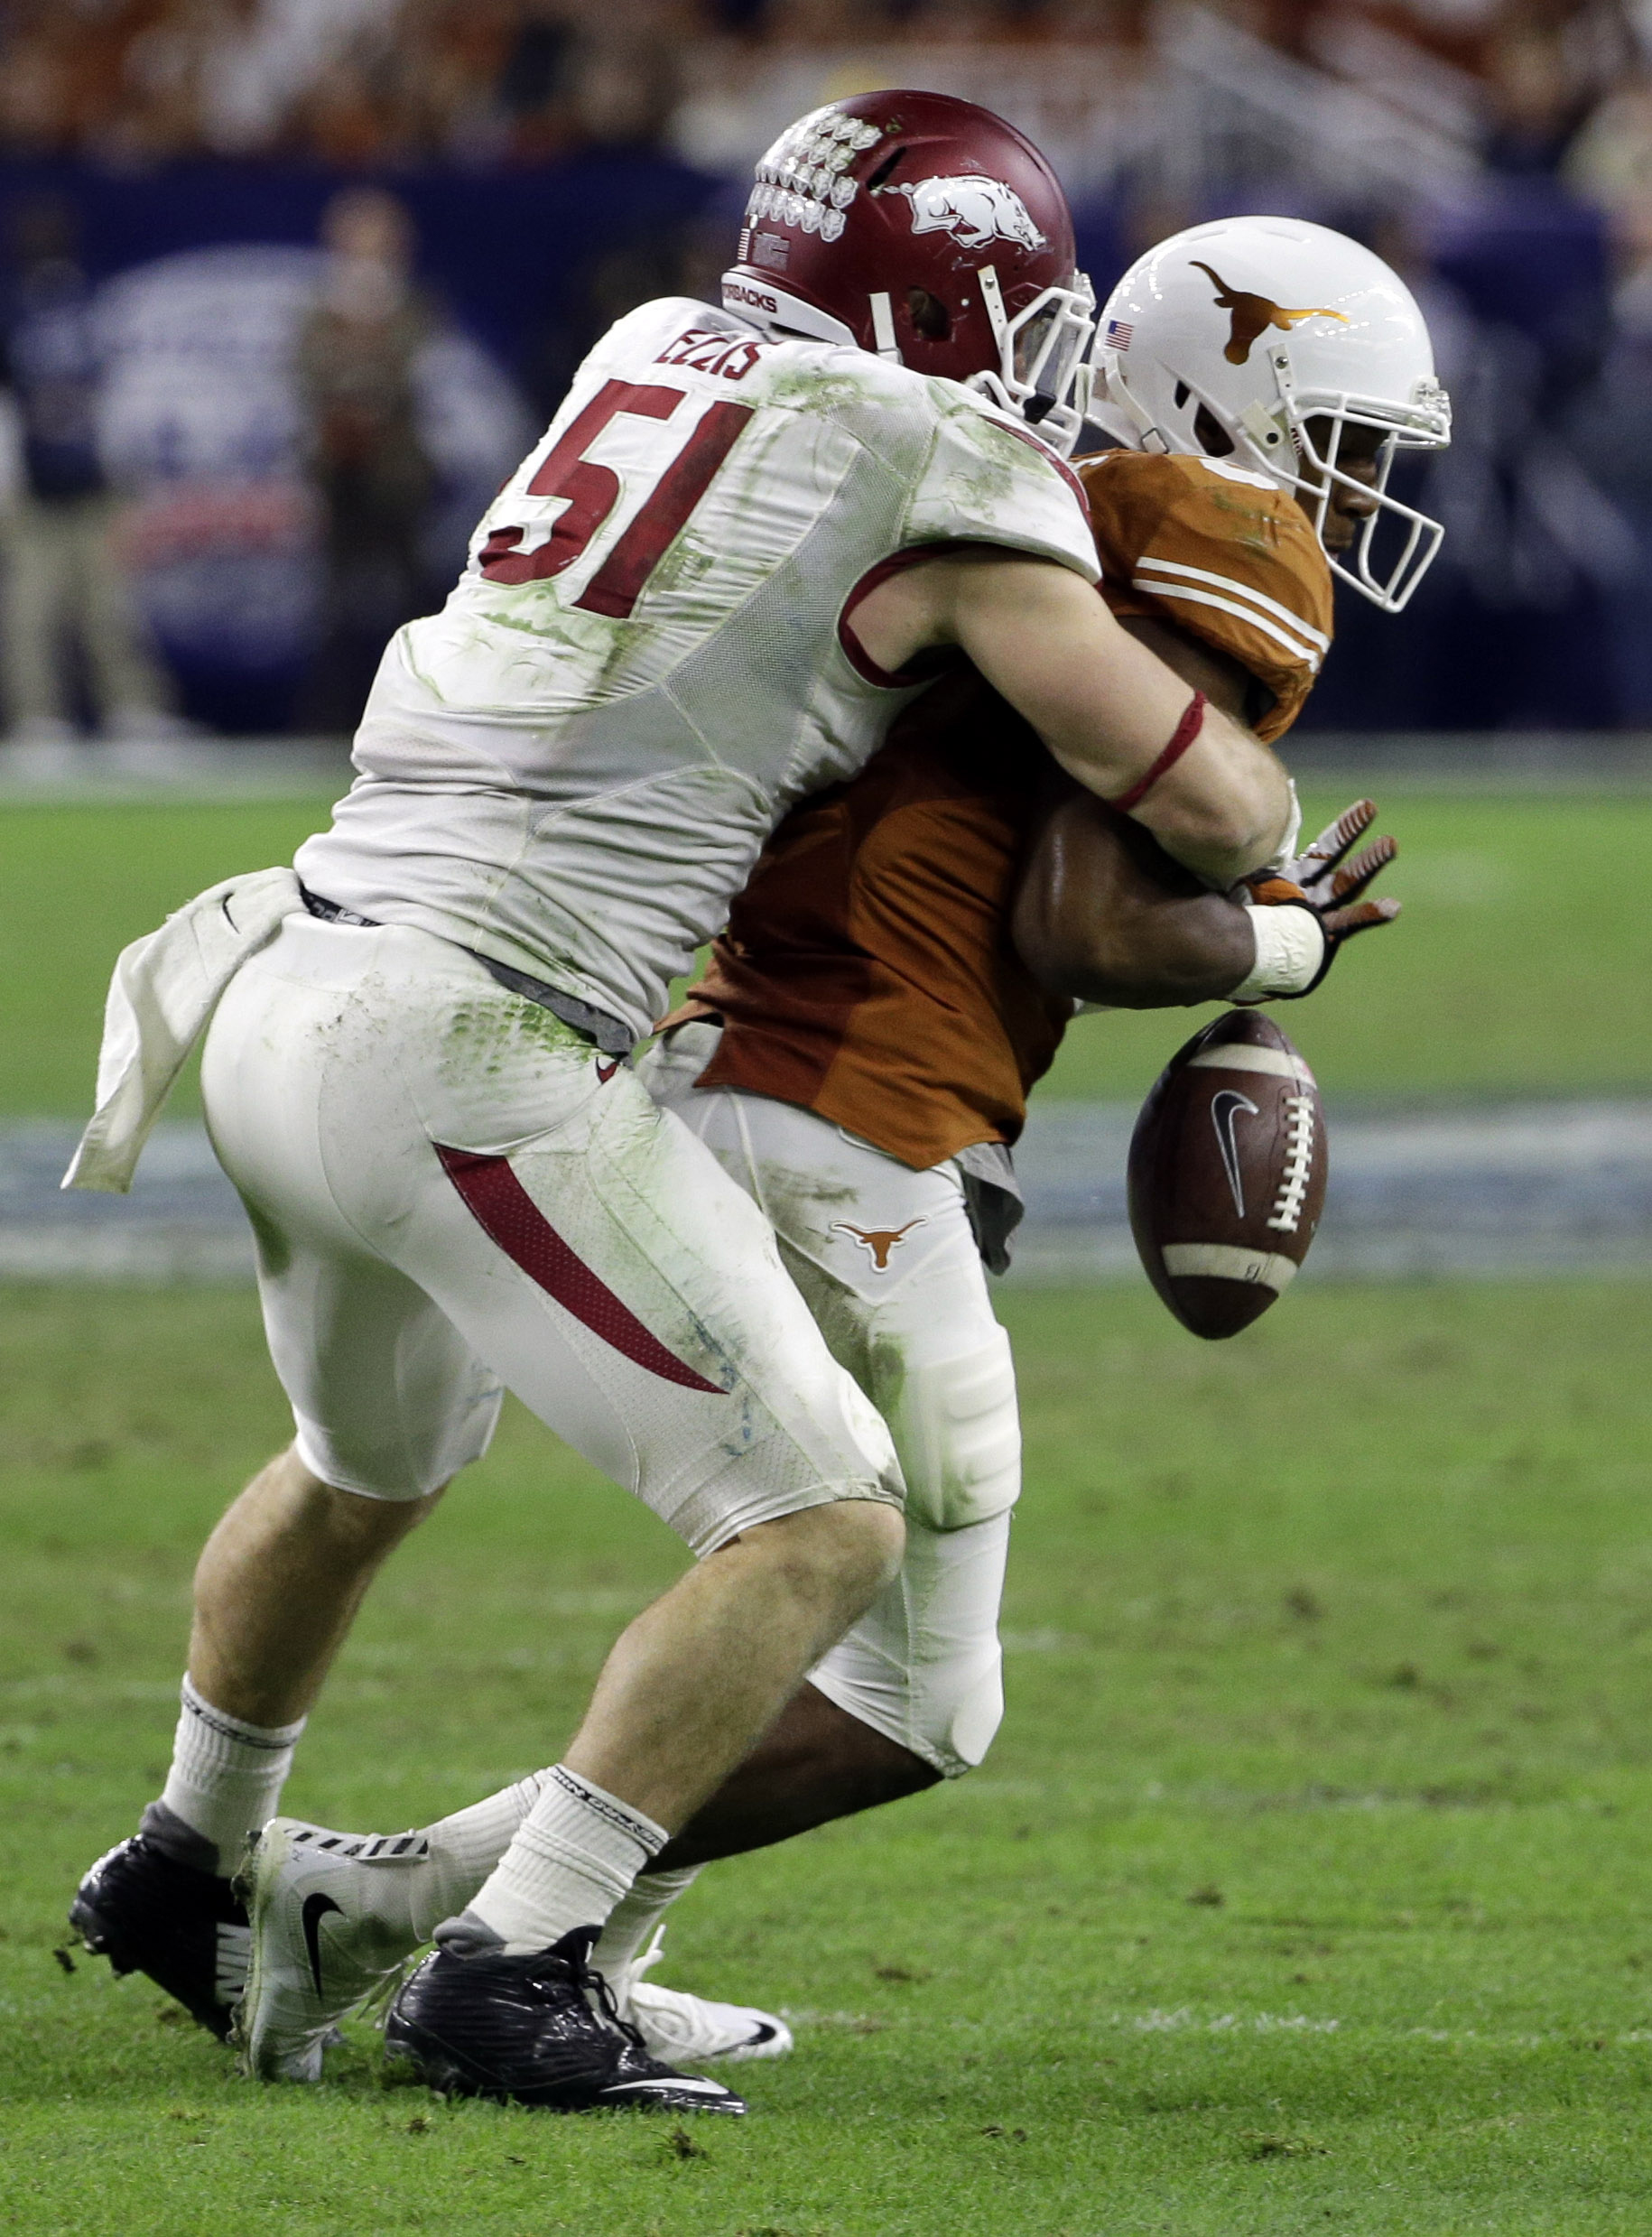 FILE - In this file photo taken  Dec. 29, 2014, Texas wide receiver John Harris (9) fumbles the ball as he is hit by Arkansas linebacker Brooks Ellis (51) during the second half of the Texas Bowl NCAA college football game in Houston. Arkansas ended last